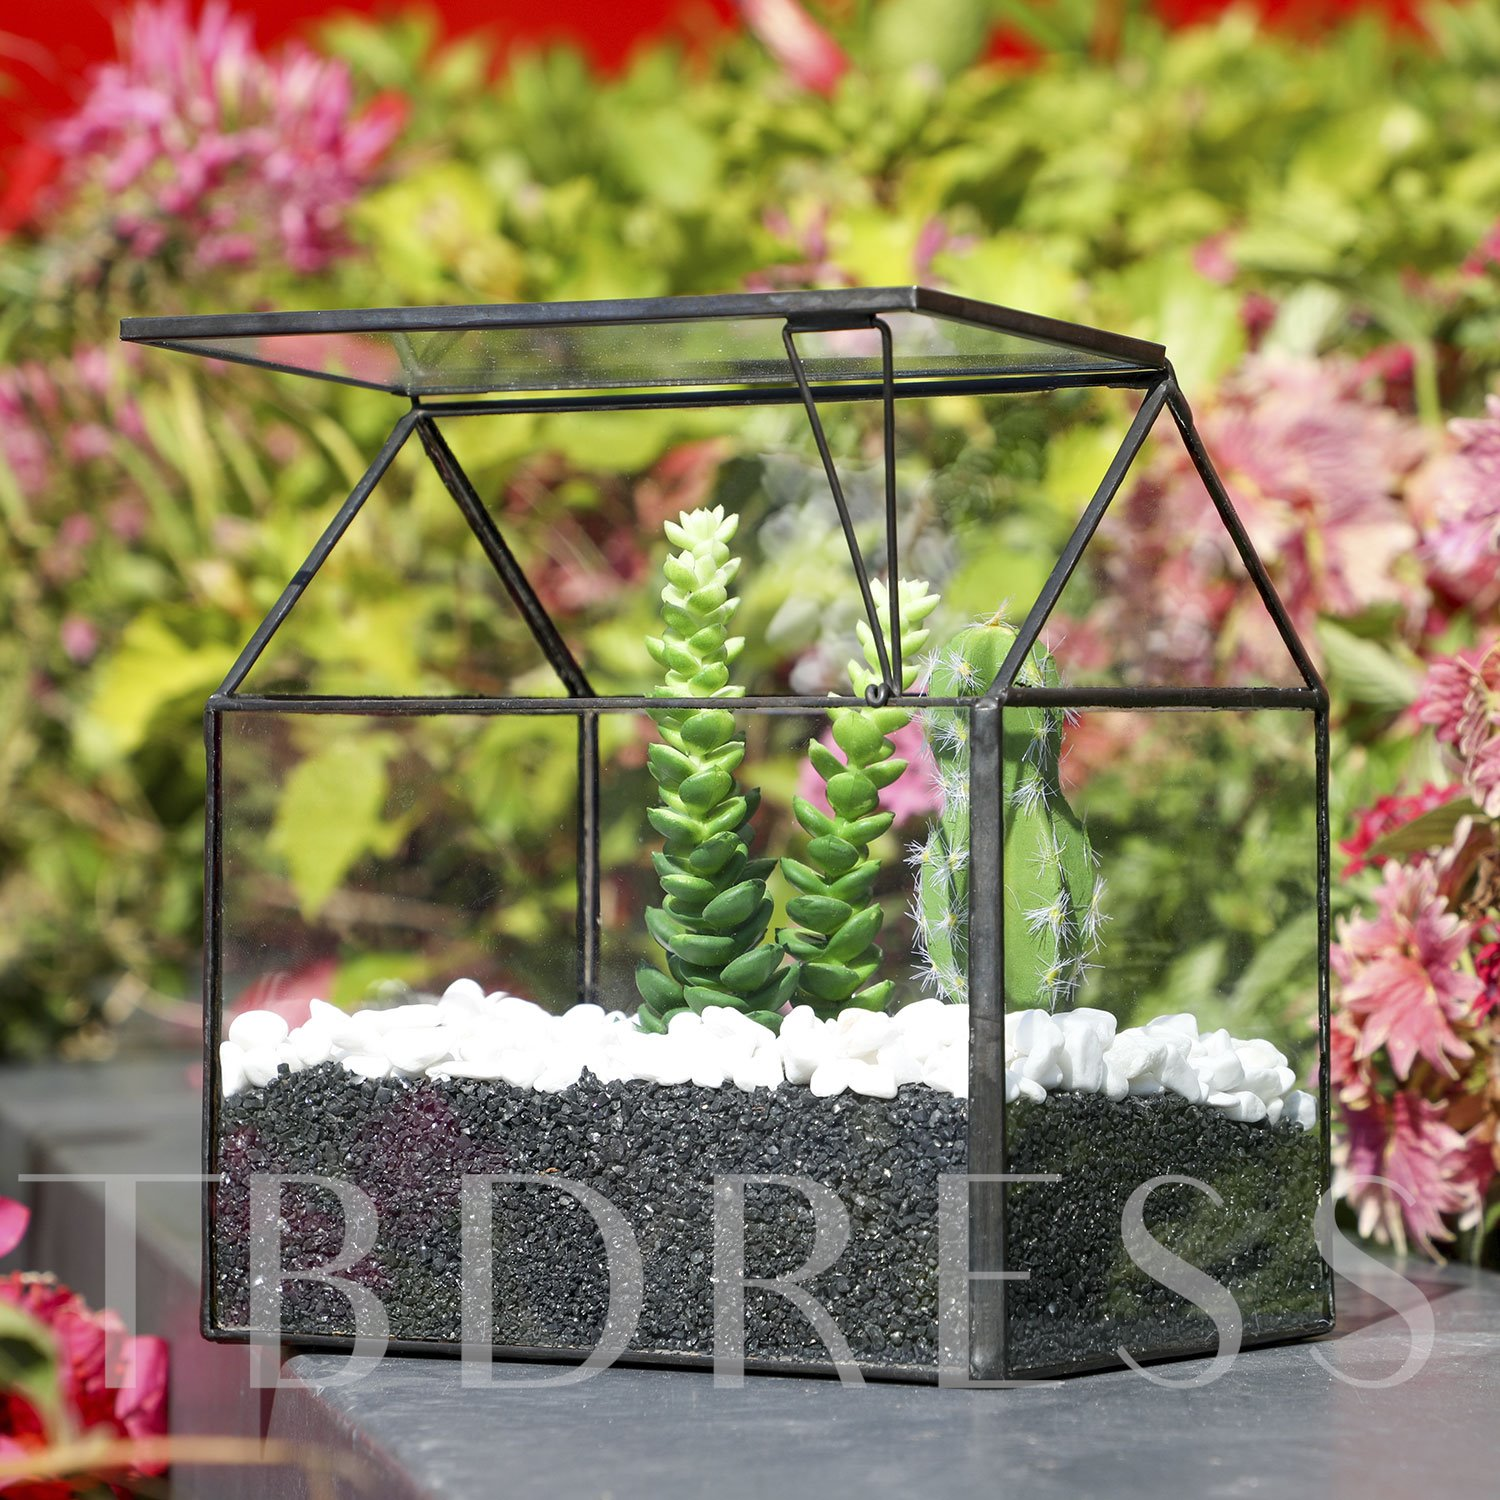 Tin black Geometric Flower Pots Glass